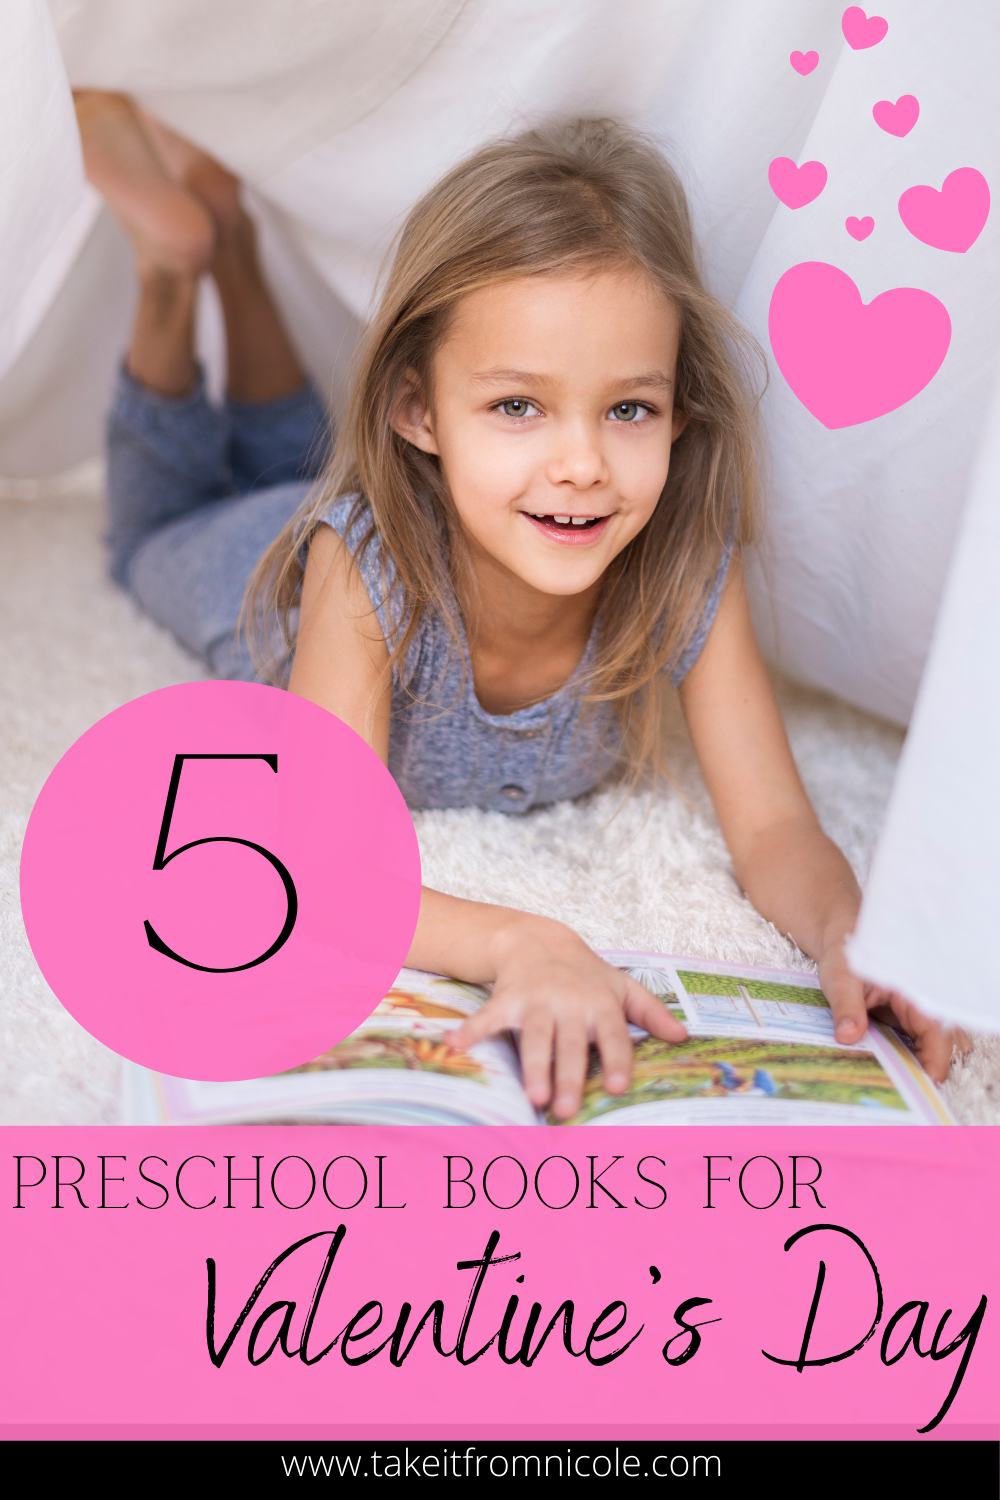 Instead of candy give your toddler or preschooler a sweet Valentine's Day book. 5 books that are perfect for little kids.